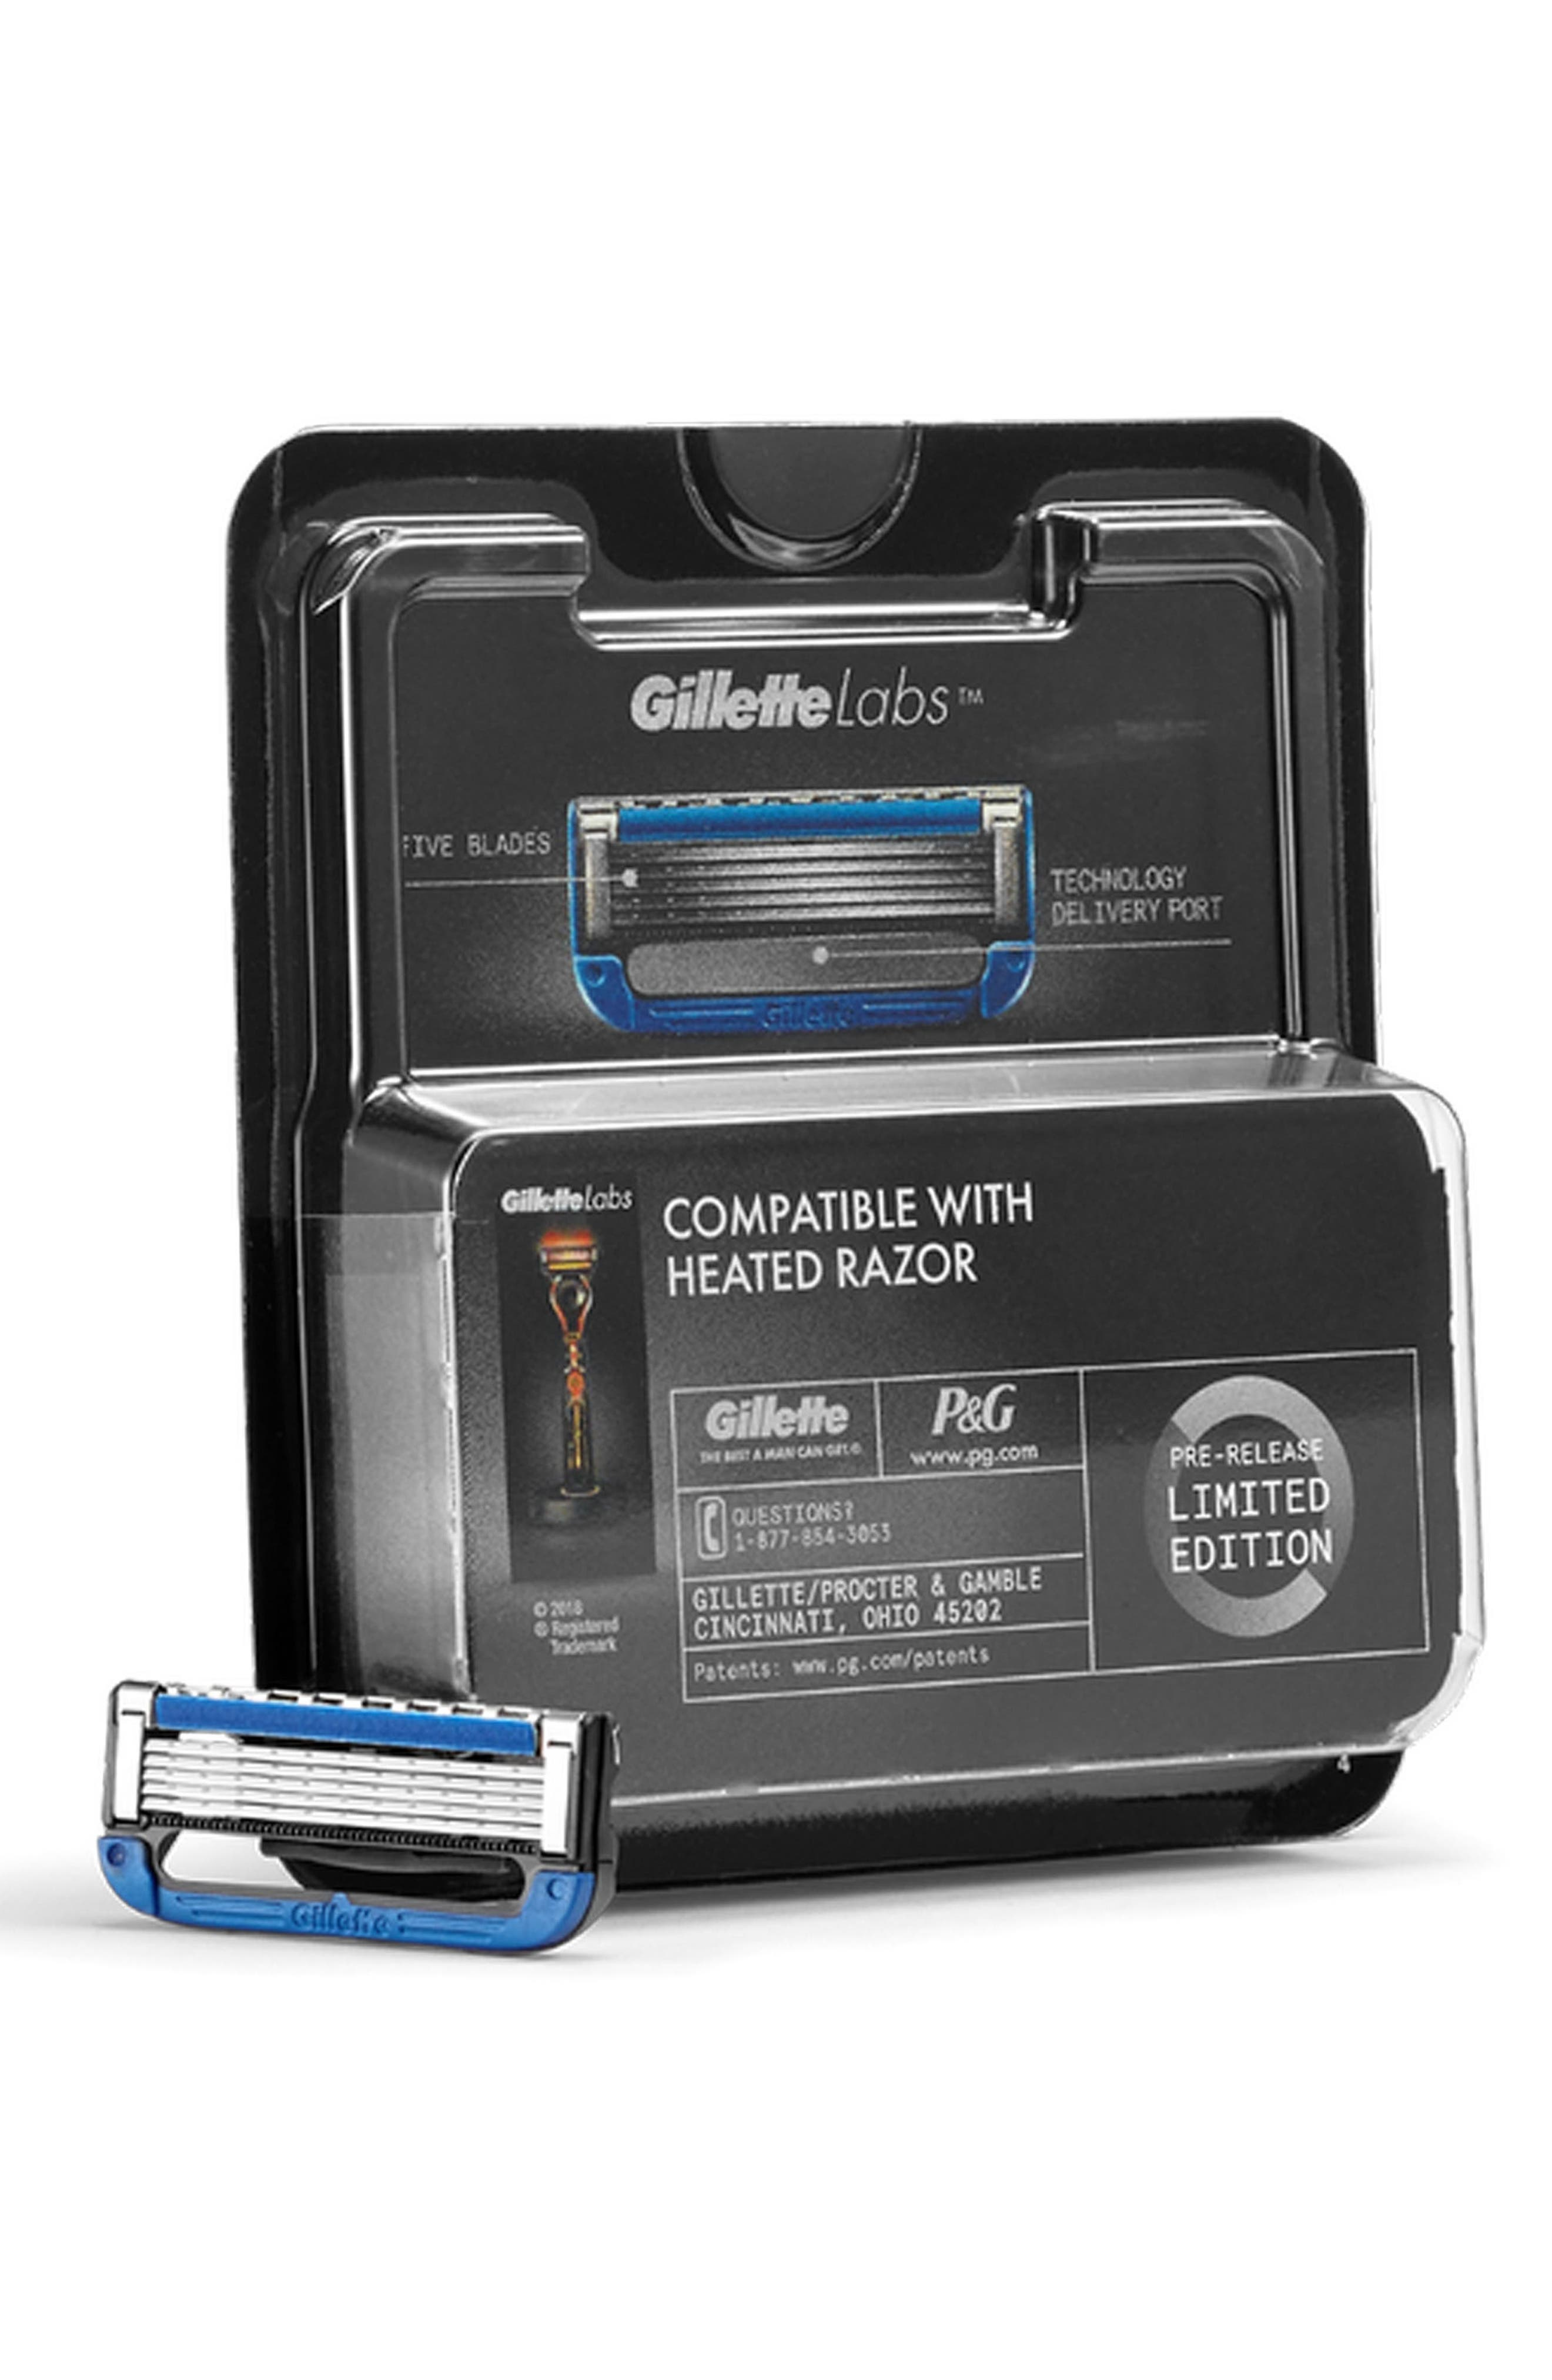 What it is: A set of eight cartridge refills designed to fit your GilletteLabs Heated Razor (sold separately).What it does: These refills feature a unique technology delivery port that allows the warming bar to fit through the cartridge so it can contact the skin to provide a heating sensation. The five-blade razor helps deliver a clean, close shave with the comfort of a hot towel in every stroke. Style Name: The Art Of Shaving Gillettelabs